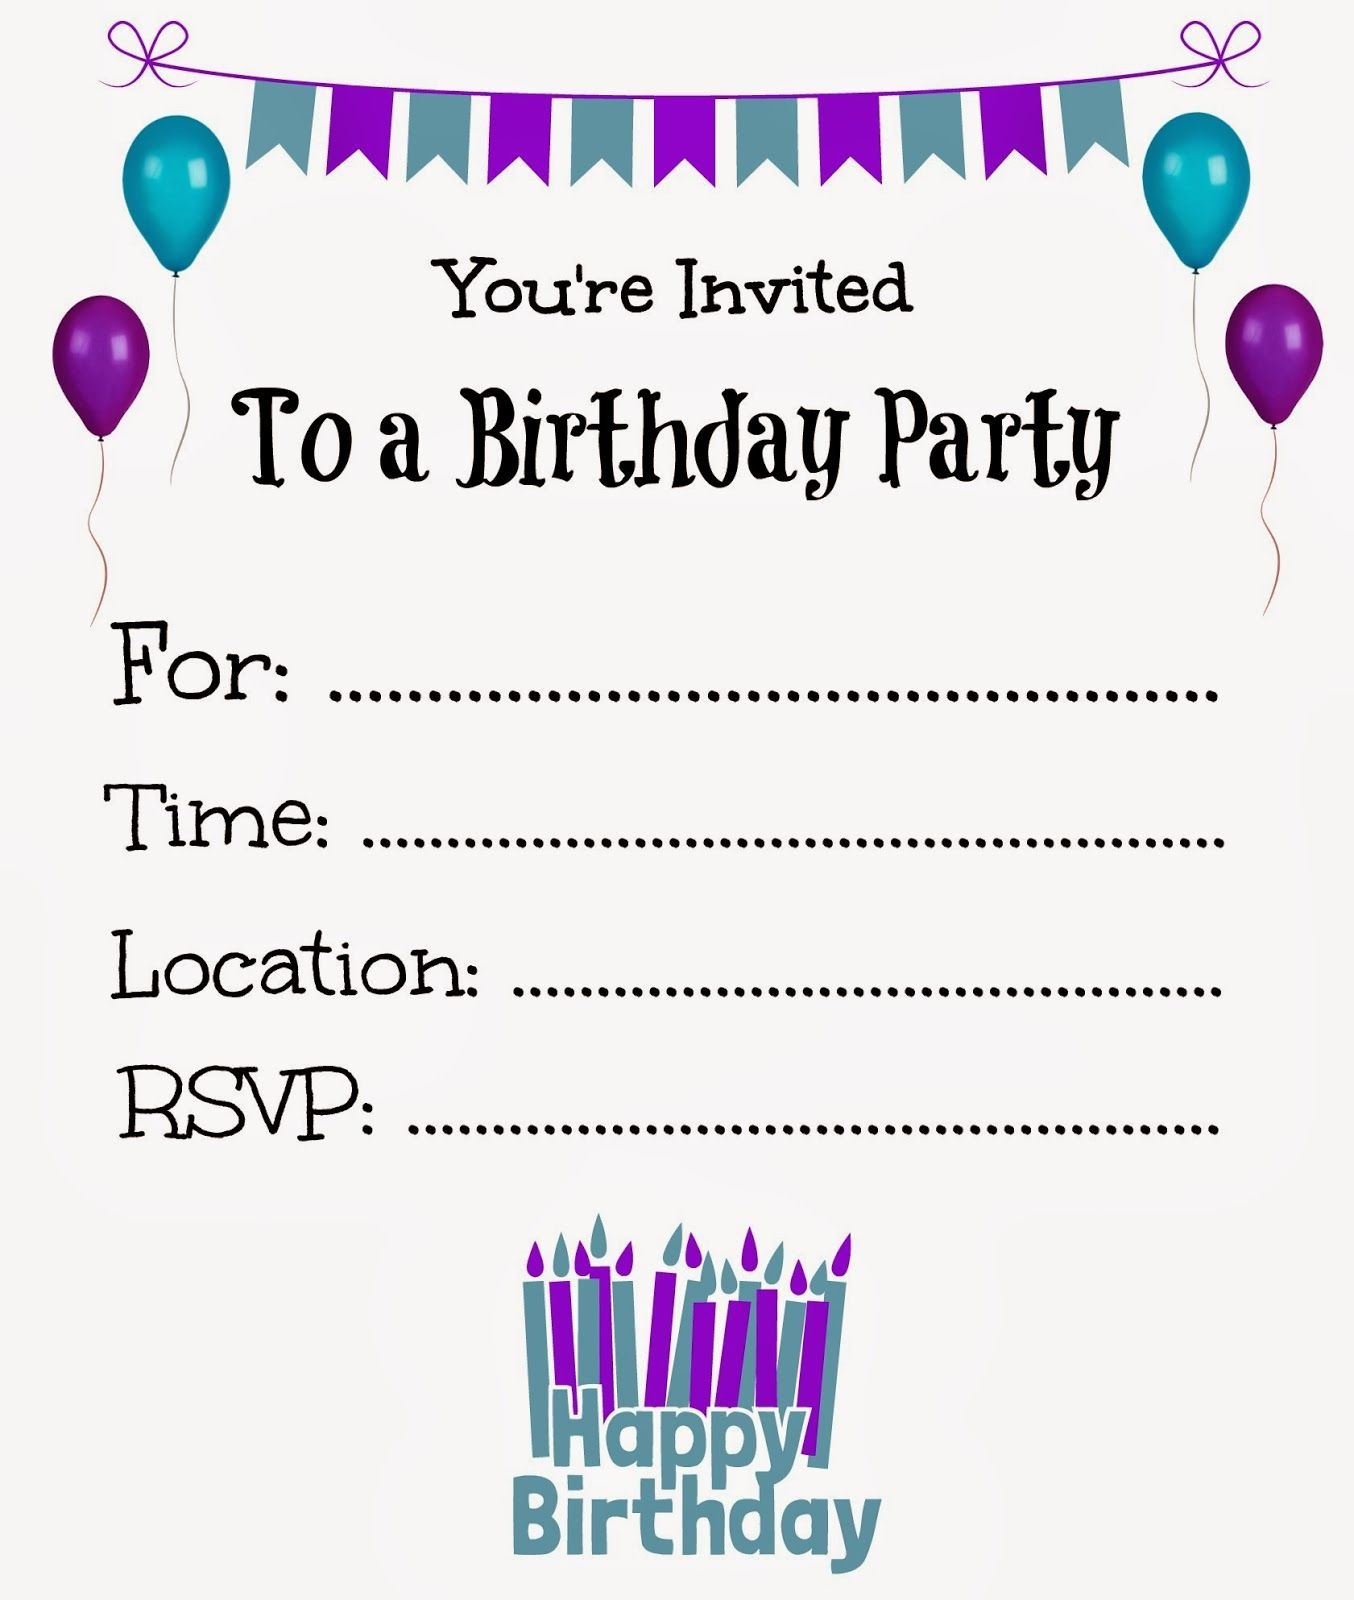 Free Printable Birthday Invitations For Kids #freeprintables - Make Your Own Printable Birthday Cards Online Free